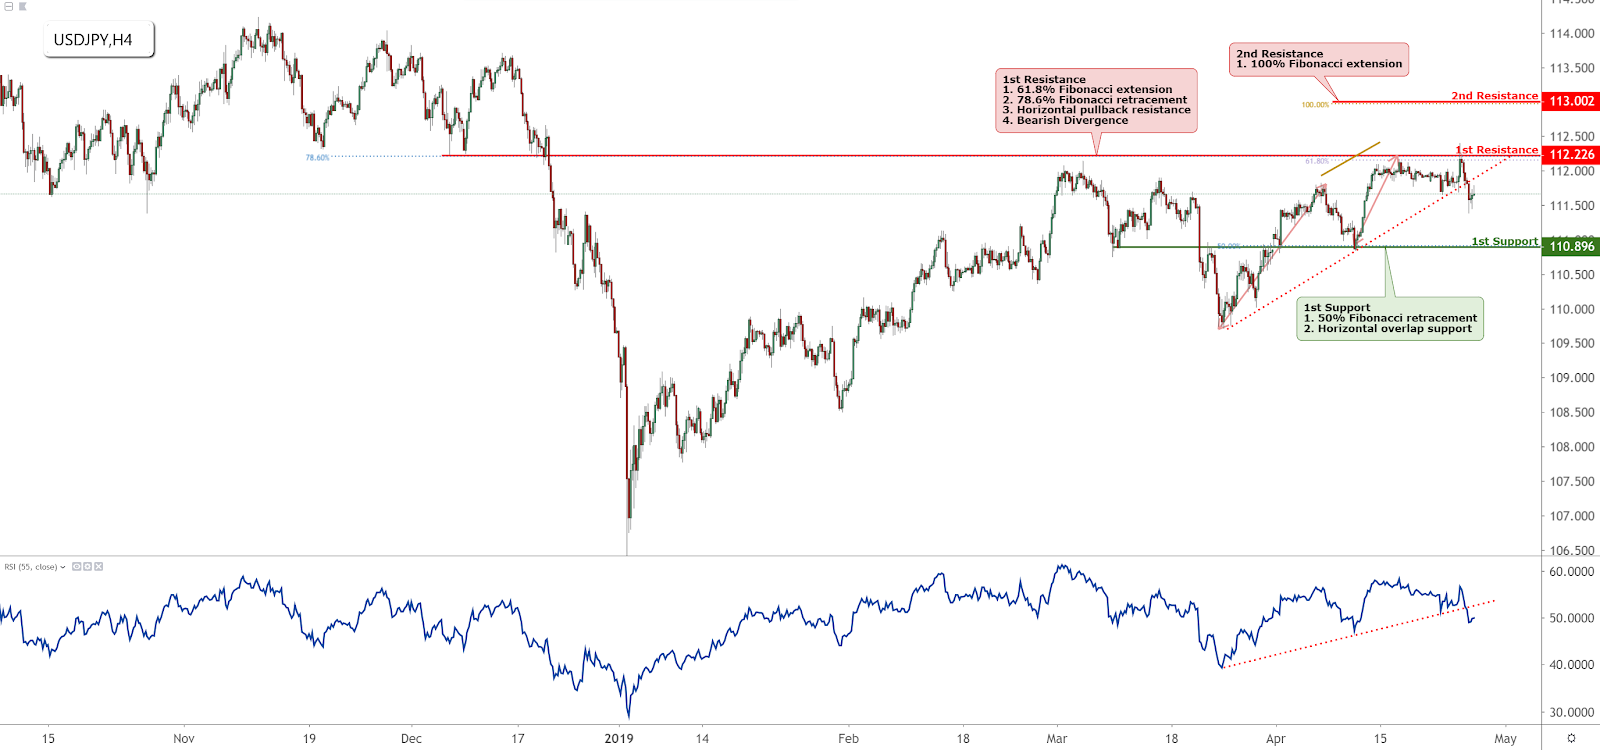 USDJPY Technical Analysis (26-04-2019)